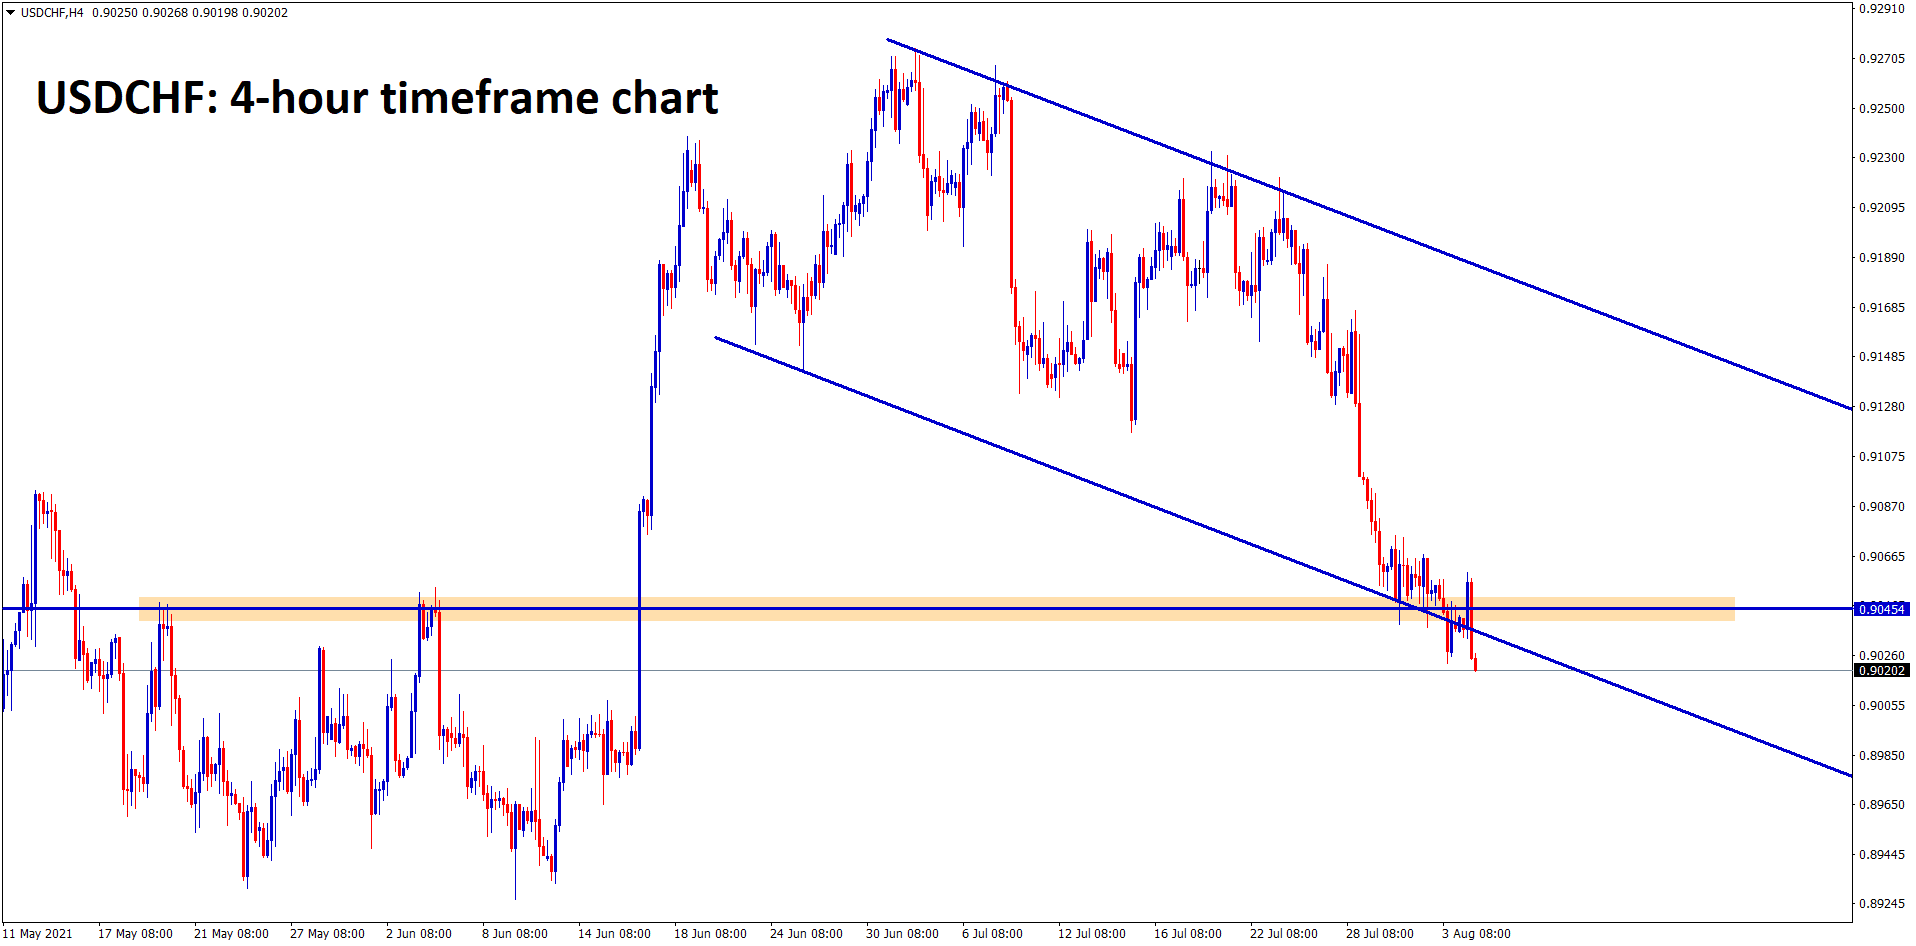 USDCHF continues to fall breaking the support and lower low of descending channel